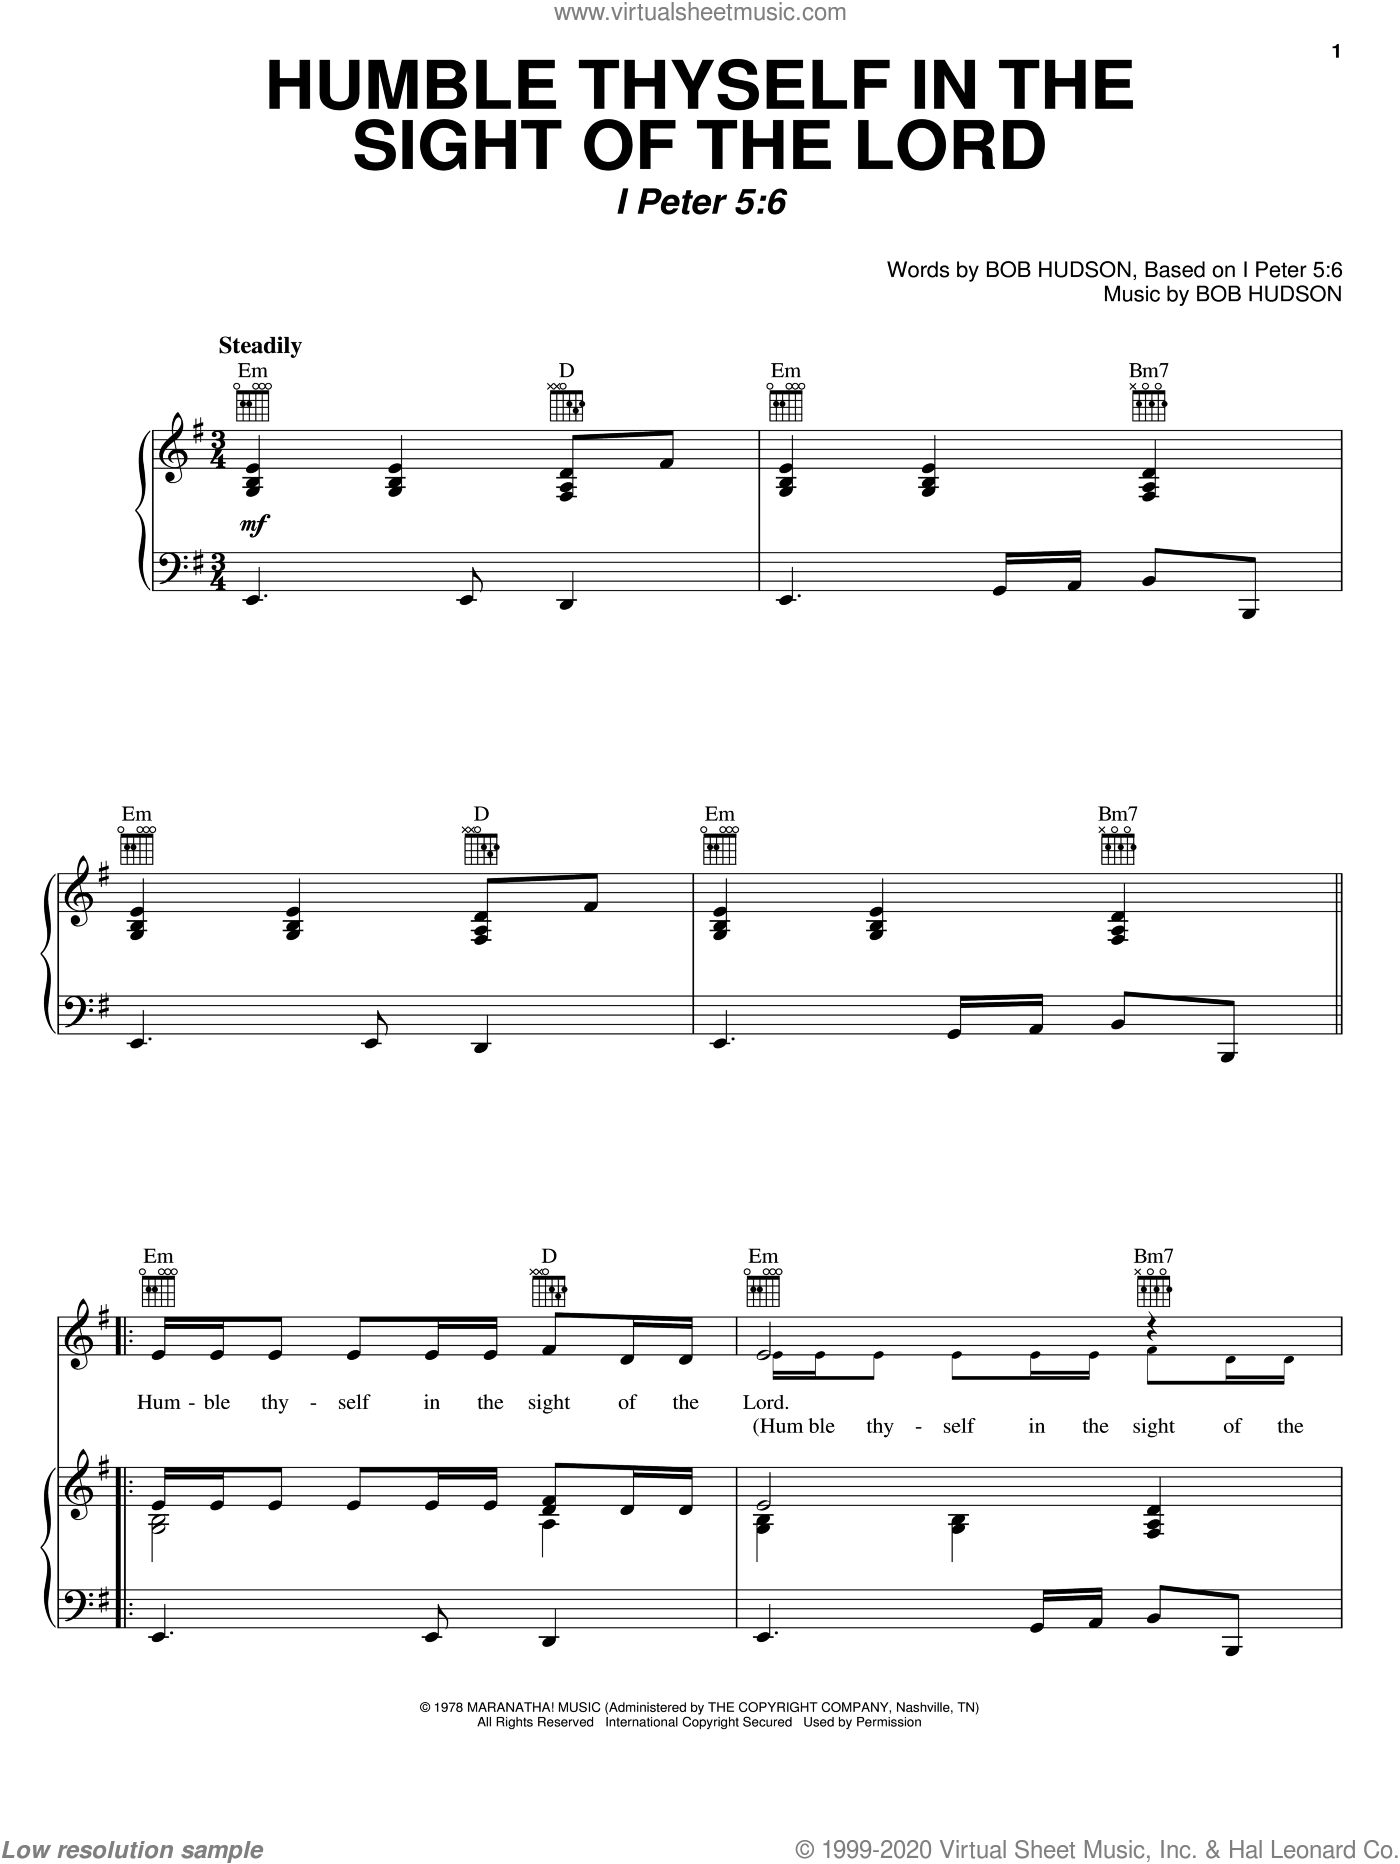 Humble Thyself In The Sight Of The Lord sheet music for voice, piano or guitar by Bob Hudson, intermediate skill level